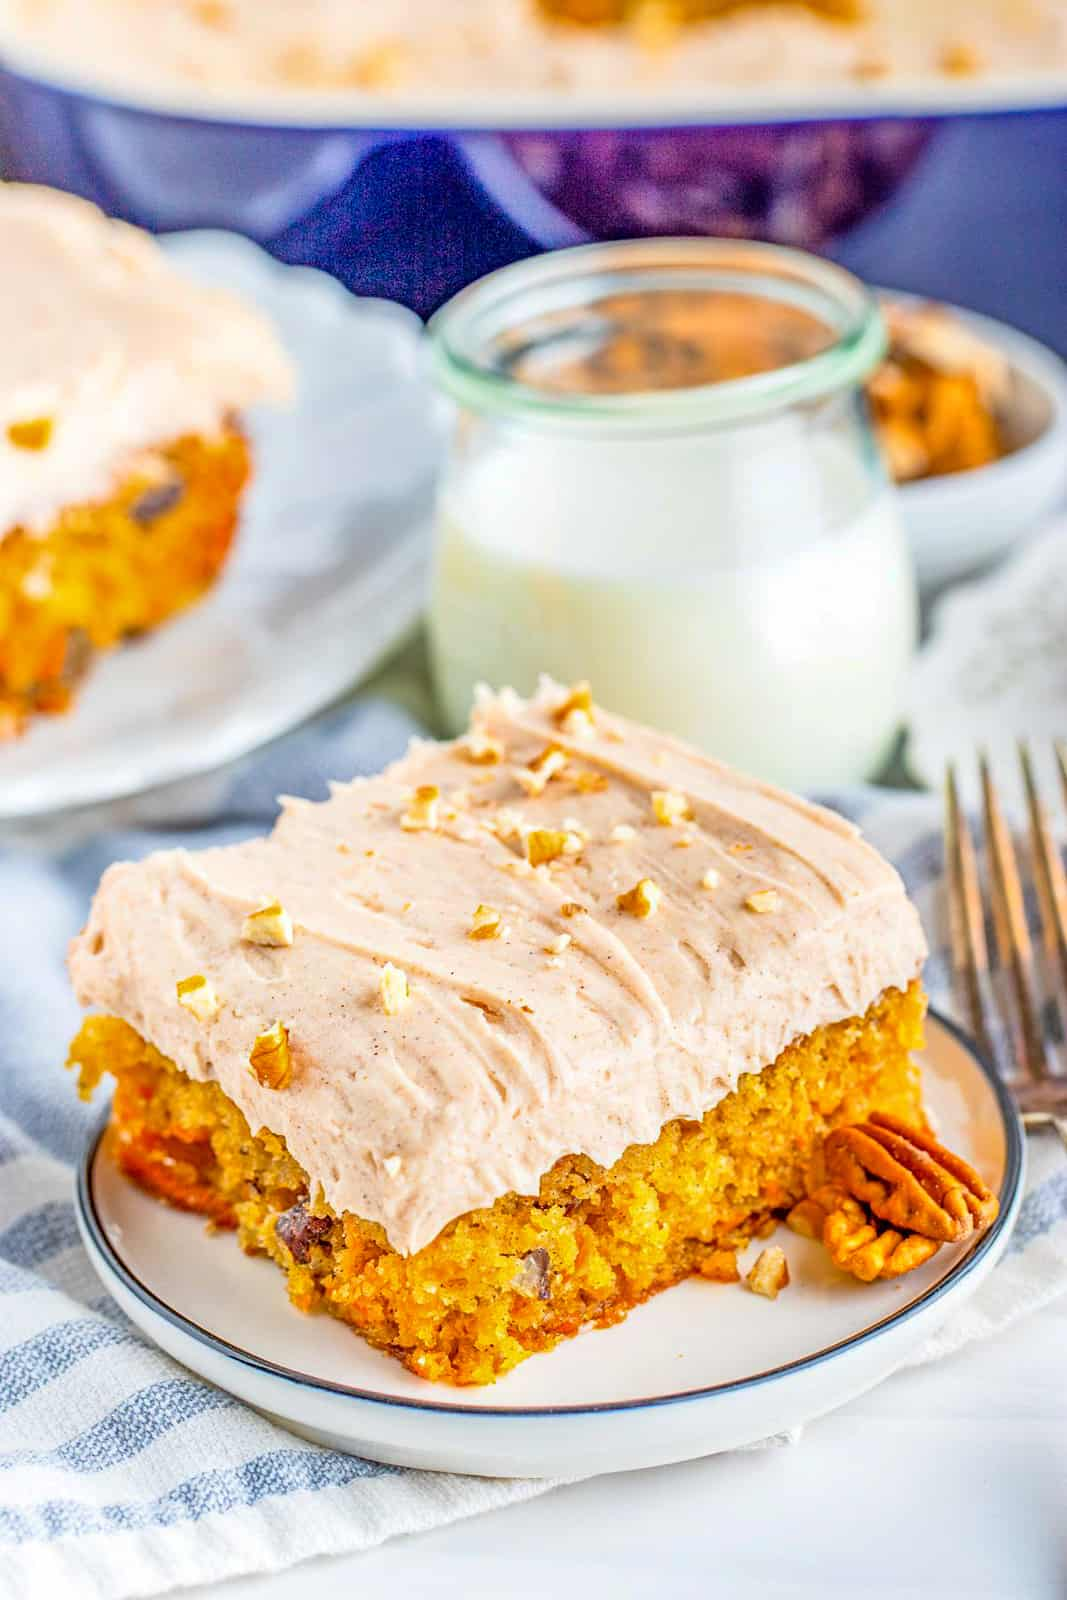 Slice of The Best Carrot Cake on plate